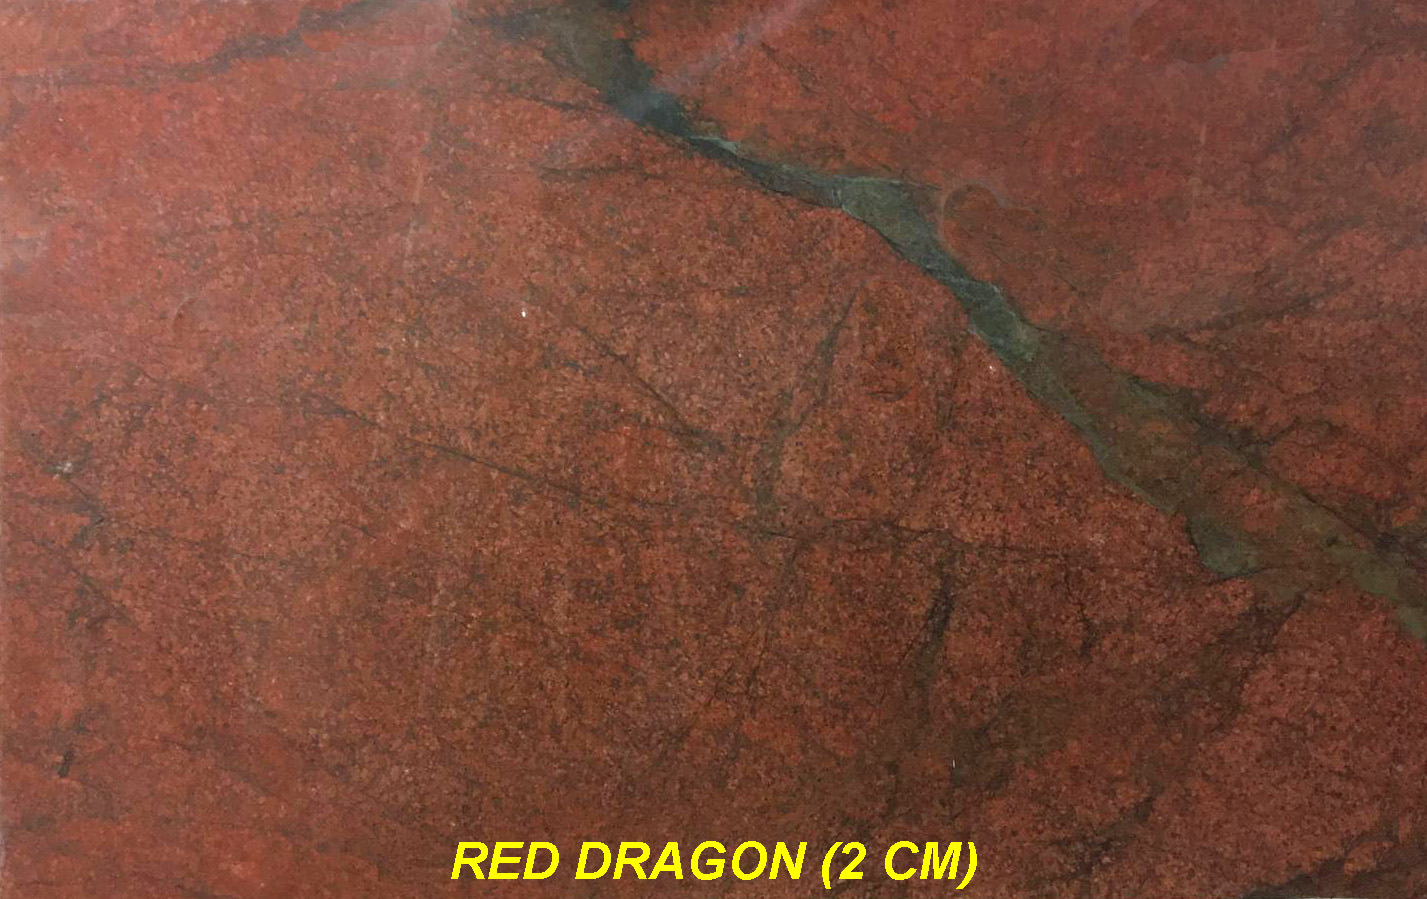 RED DRAGON (2 CM)-#28207